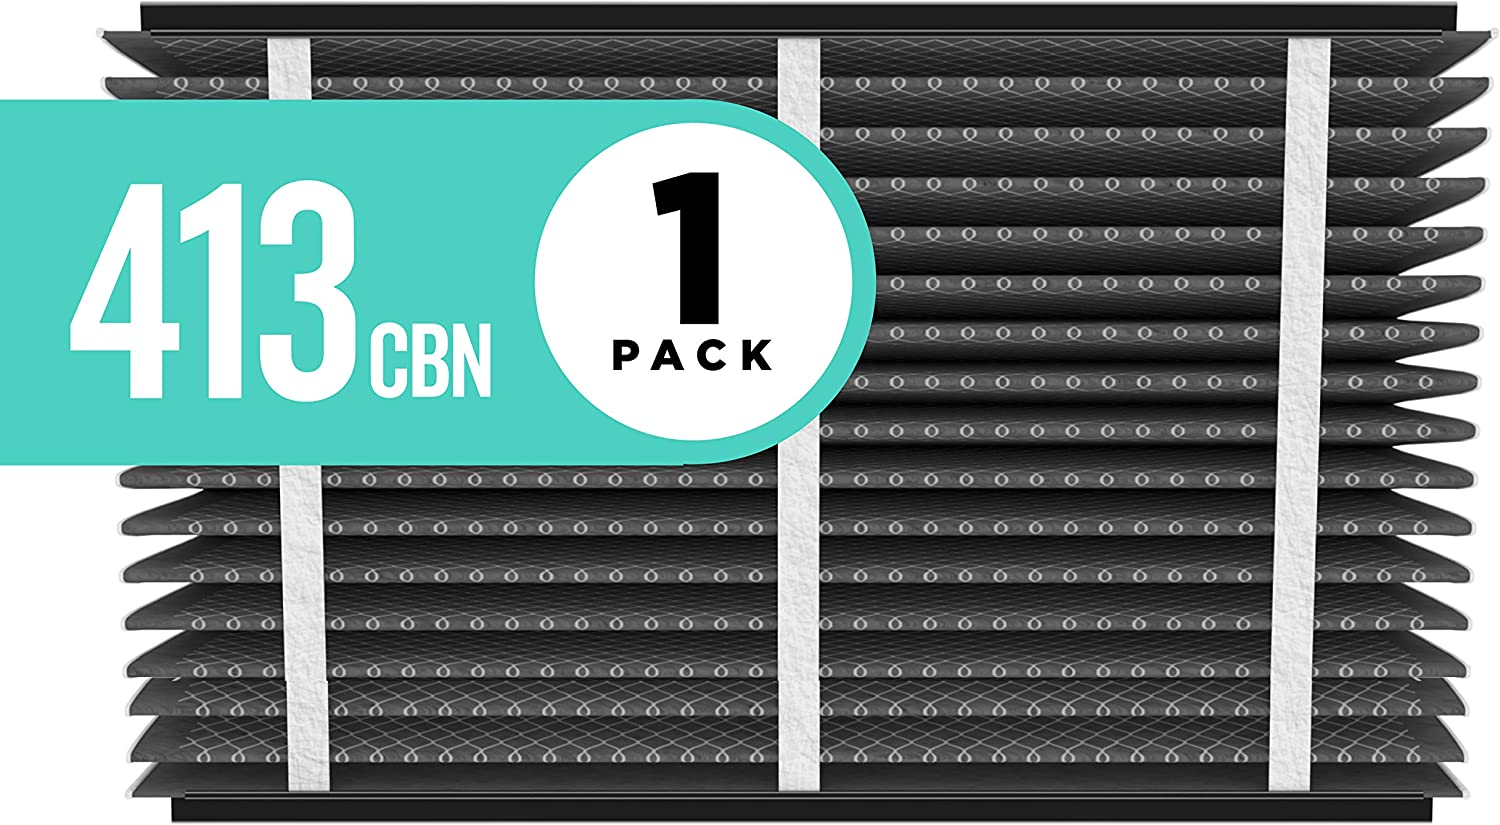 Aprilaire 413CBN Odor Reduction Air Filter for Aprilaire Whole-Home Air Purifiers, MERV 13, for Odors and Most Common Allergens (Pack of 1)